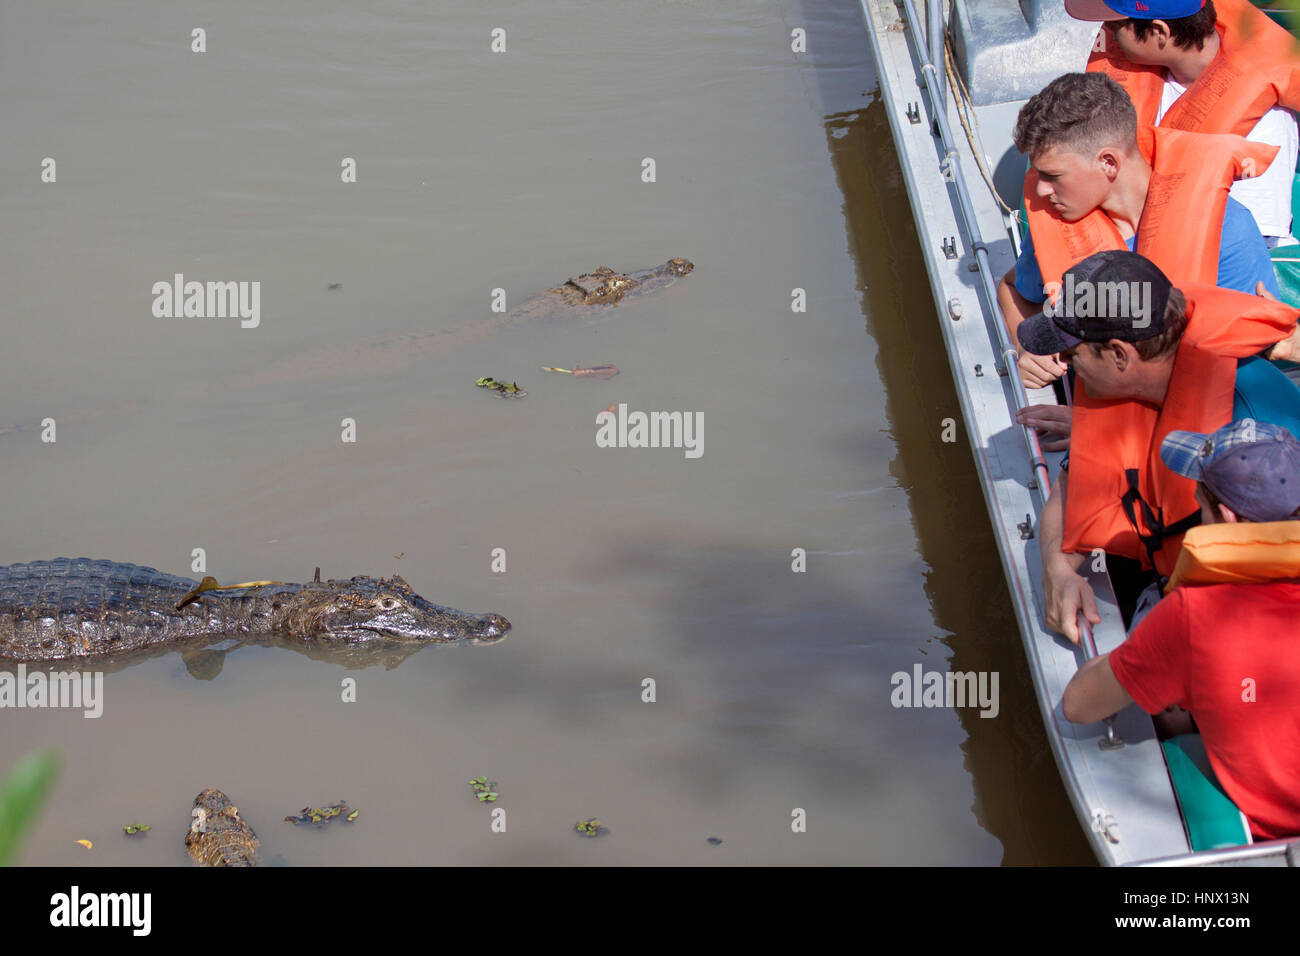 Tourists having a close encounter with Caiman in river in Brazil - Stock Image